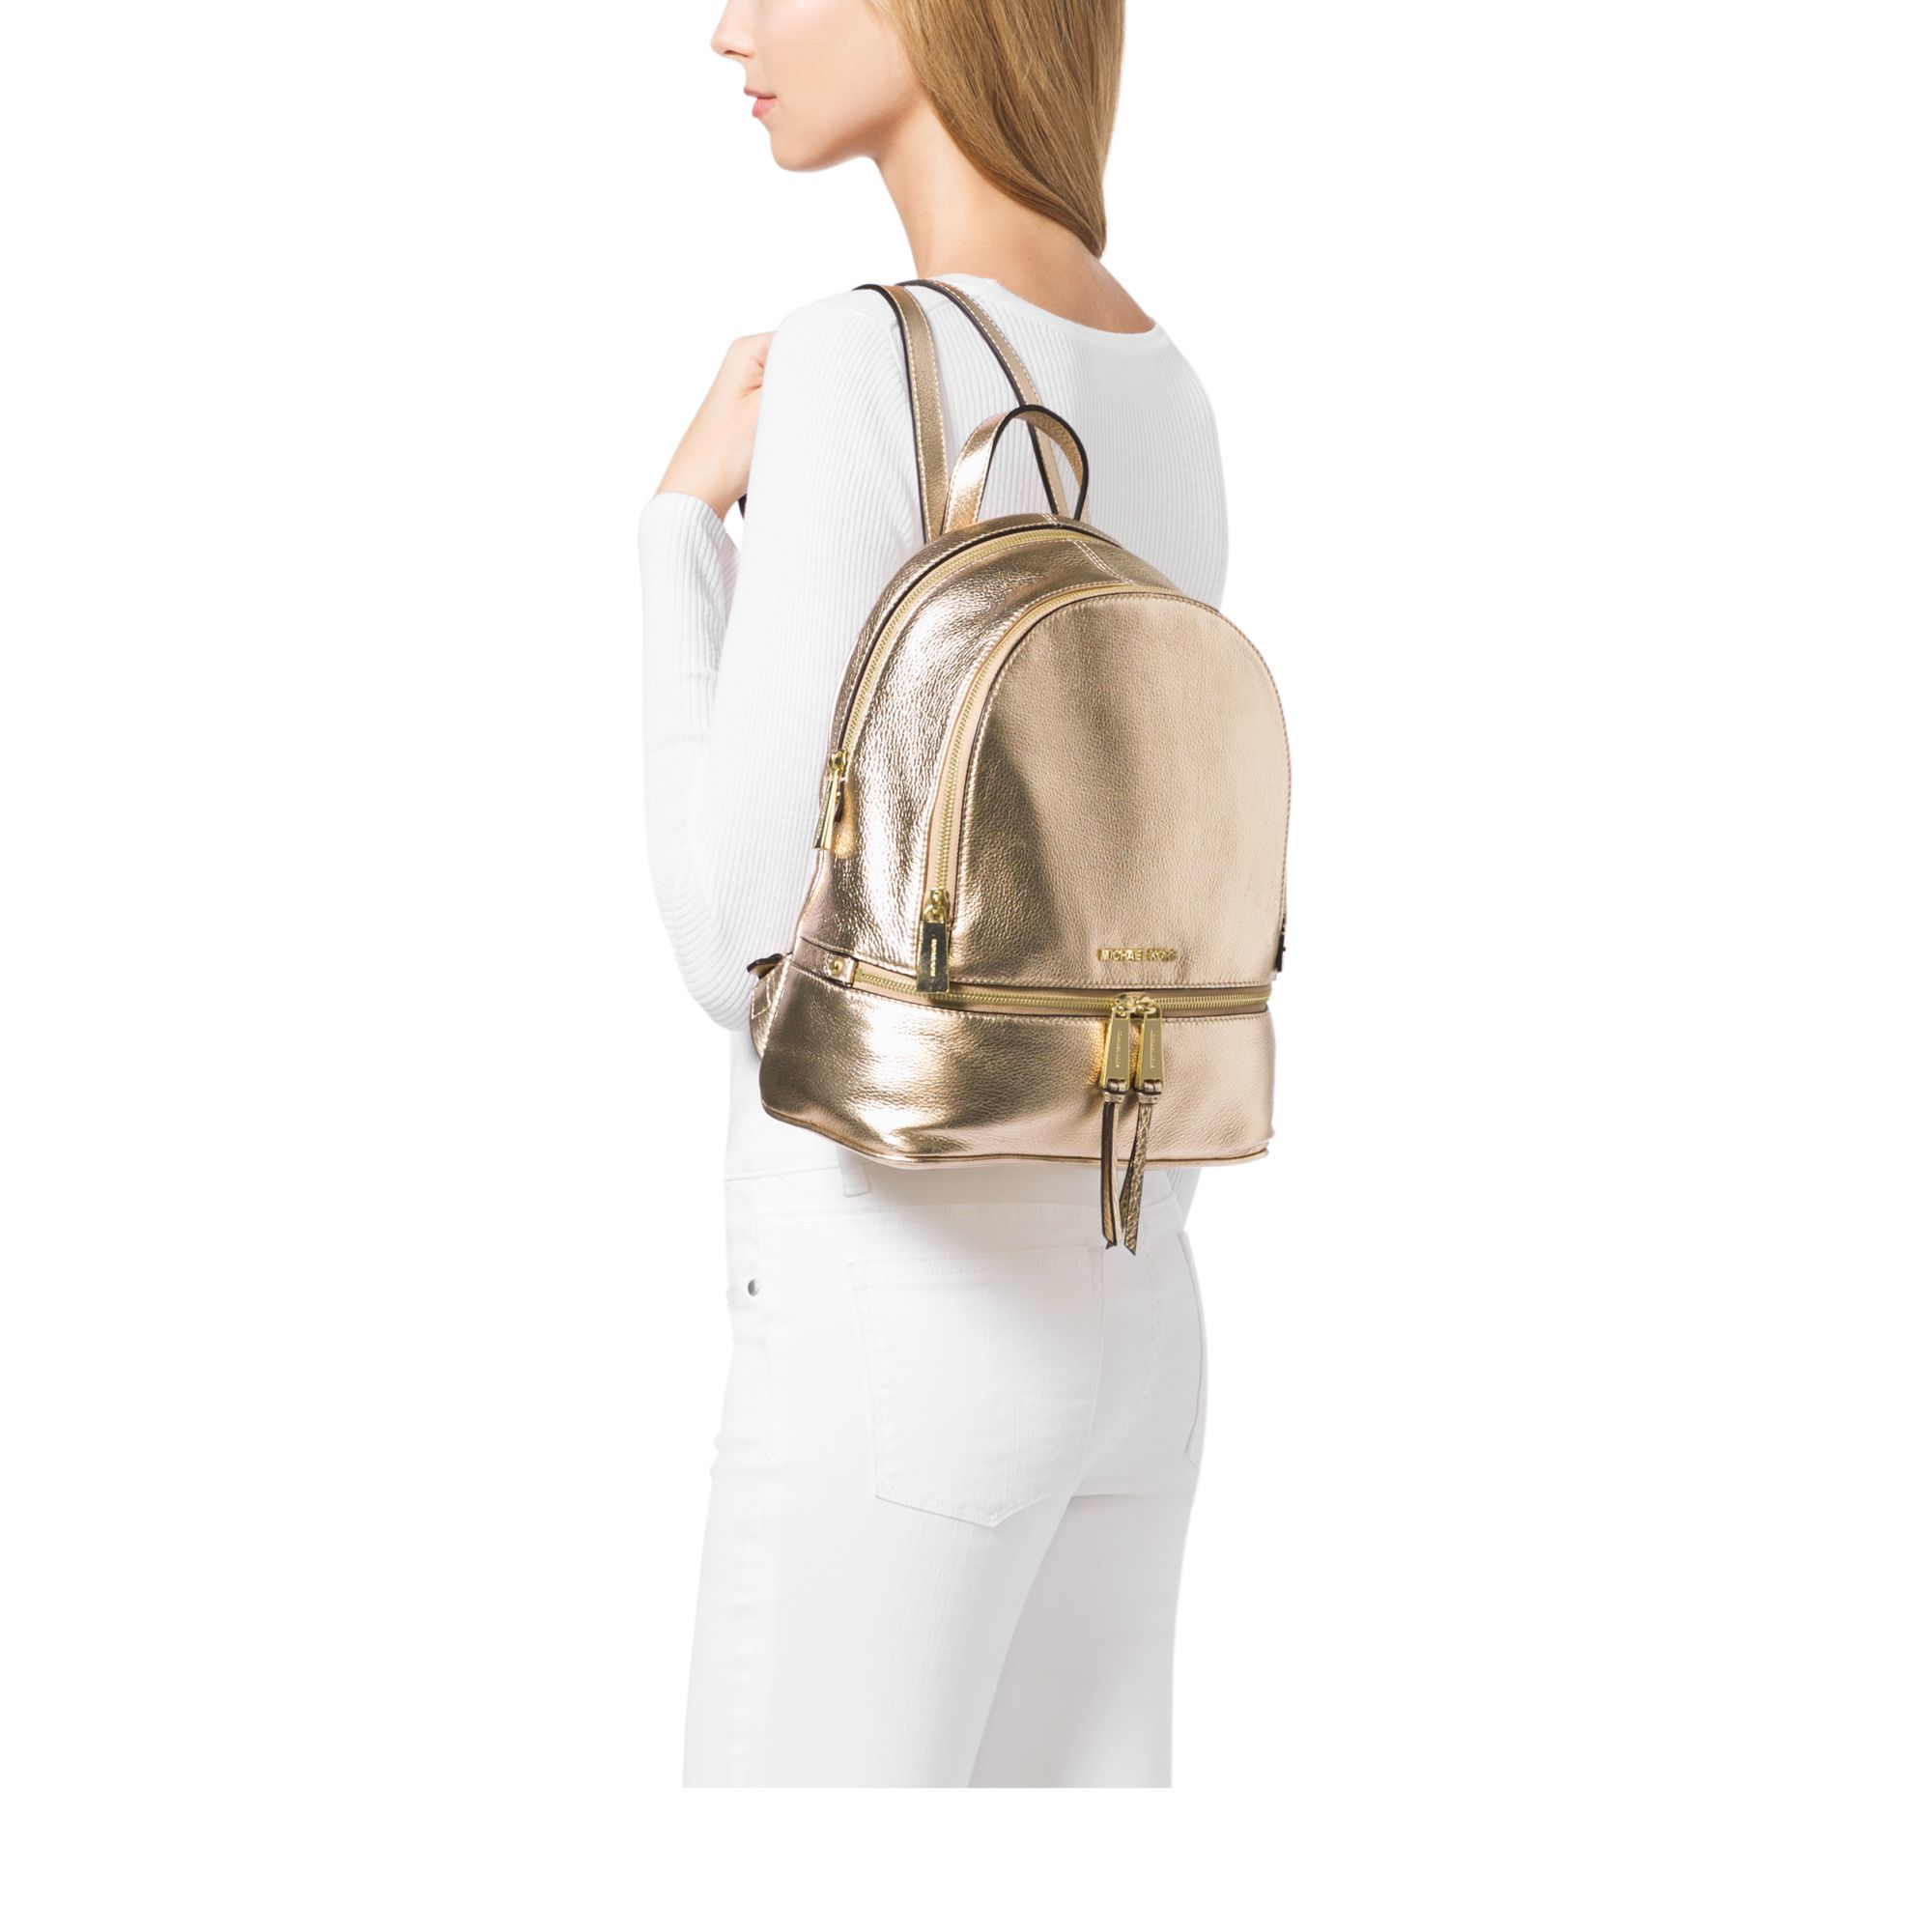 ef24ffc18838 Lyst - Michael Kors Rhea Metallic Medium Backpack in Metallic